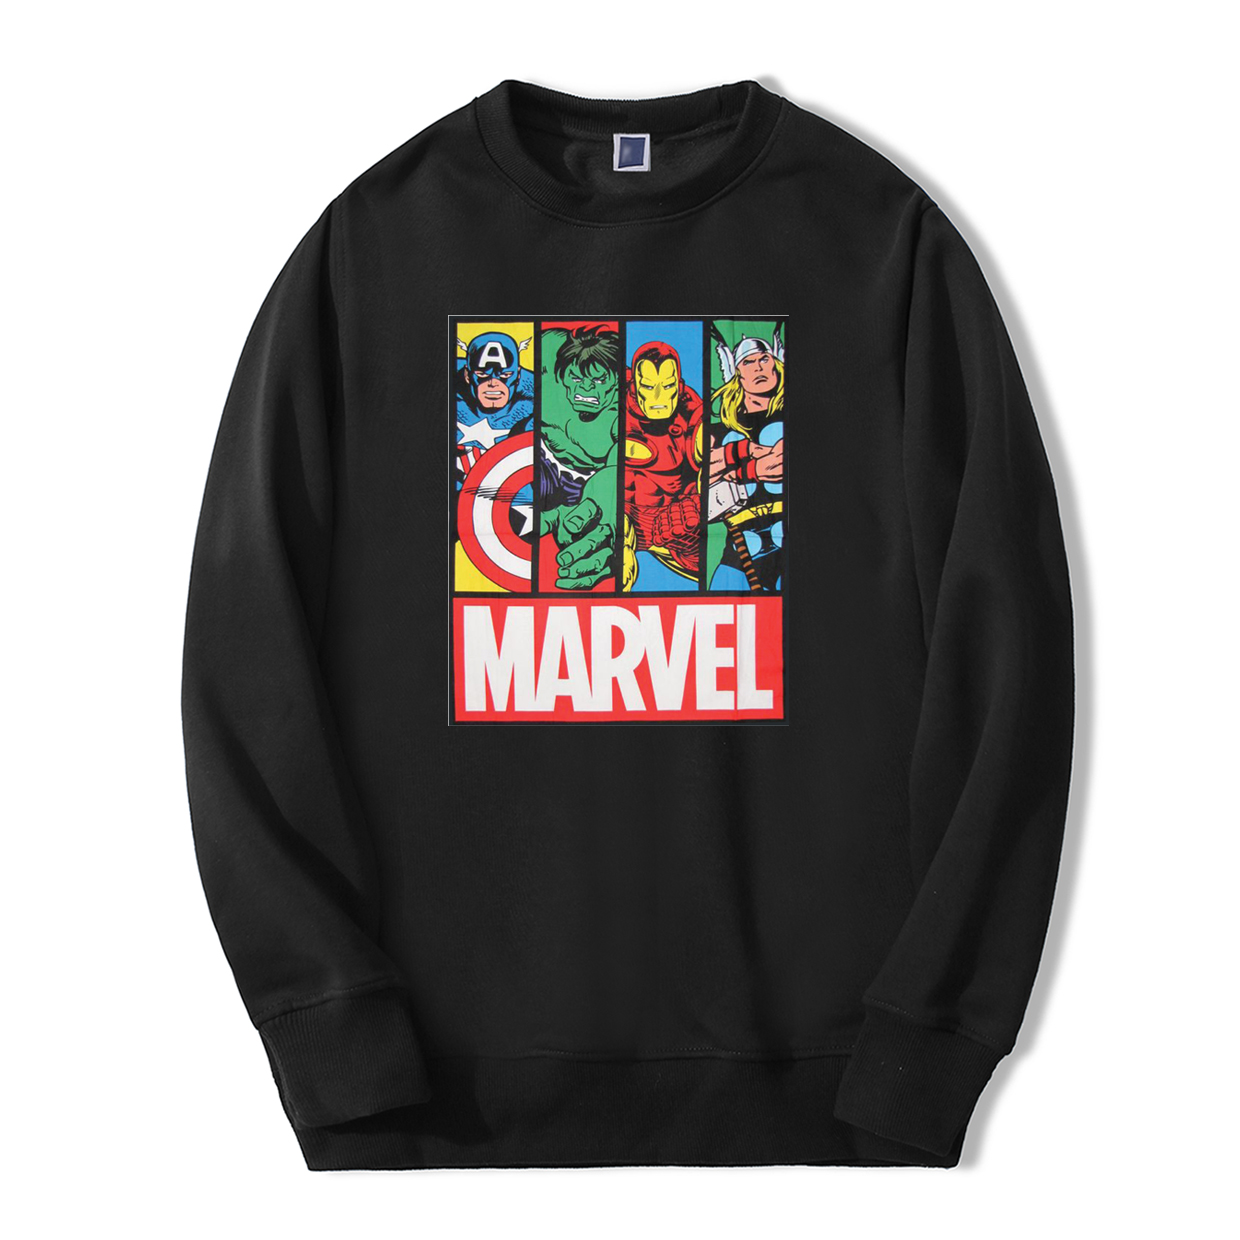 Super Hero Sweatshirts Hoodies Men Brand Avengers Marvel Comic Casual Streetwear 2019 New Fleece Pollover Winter Warm Tracksuit